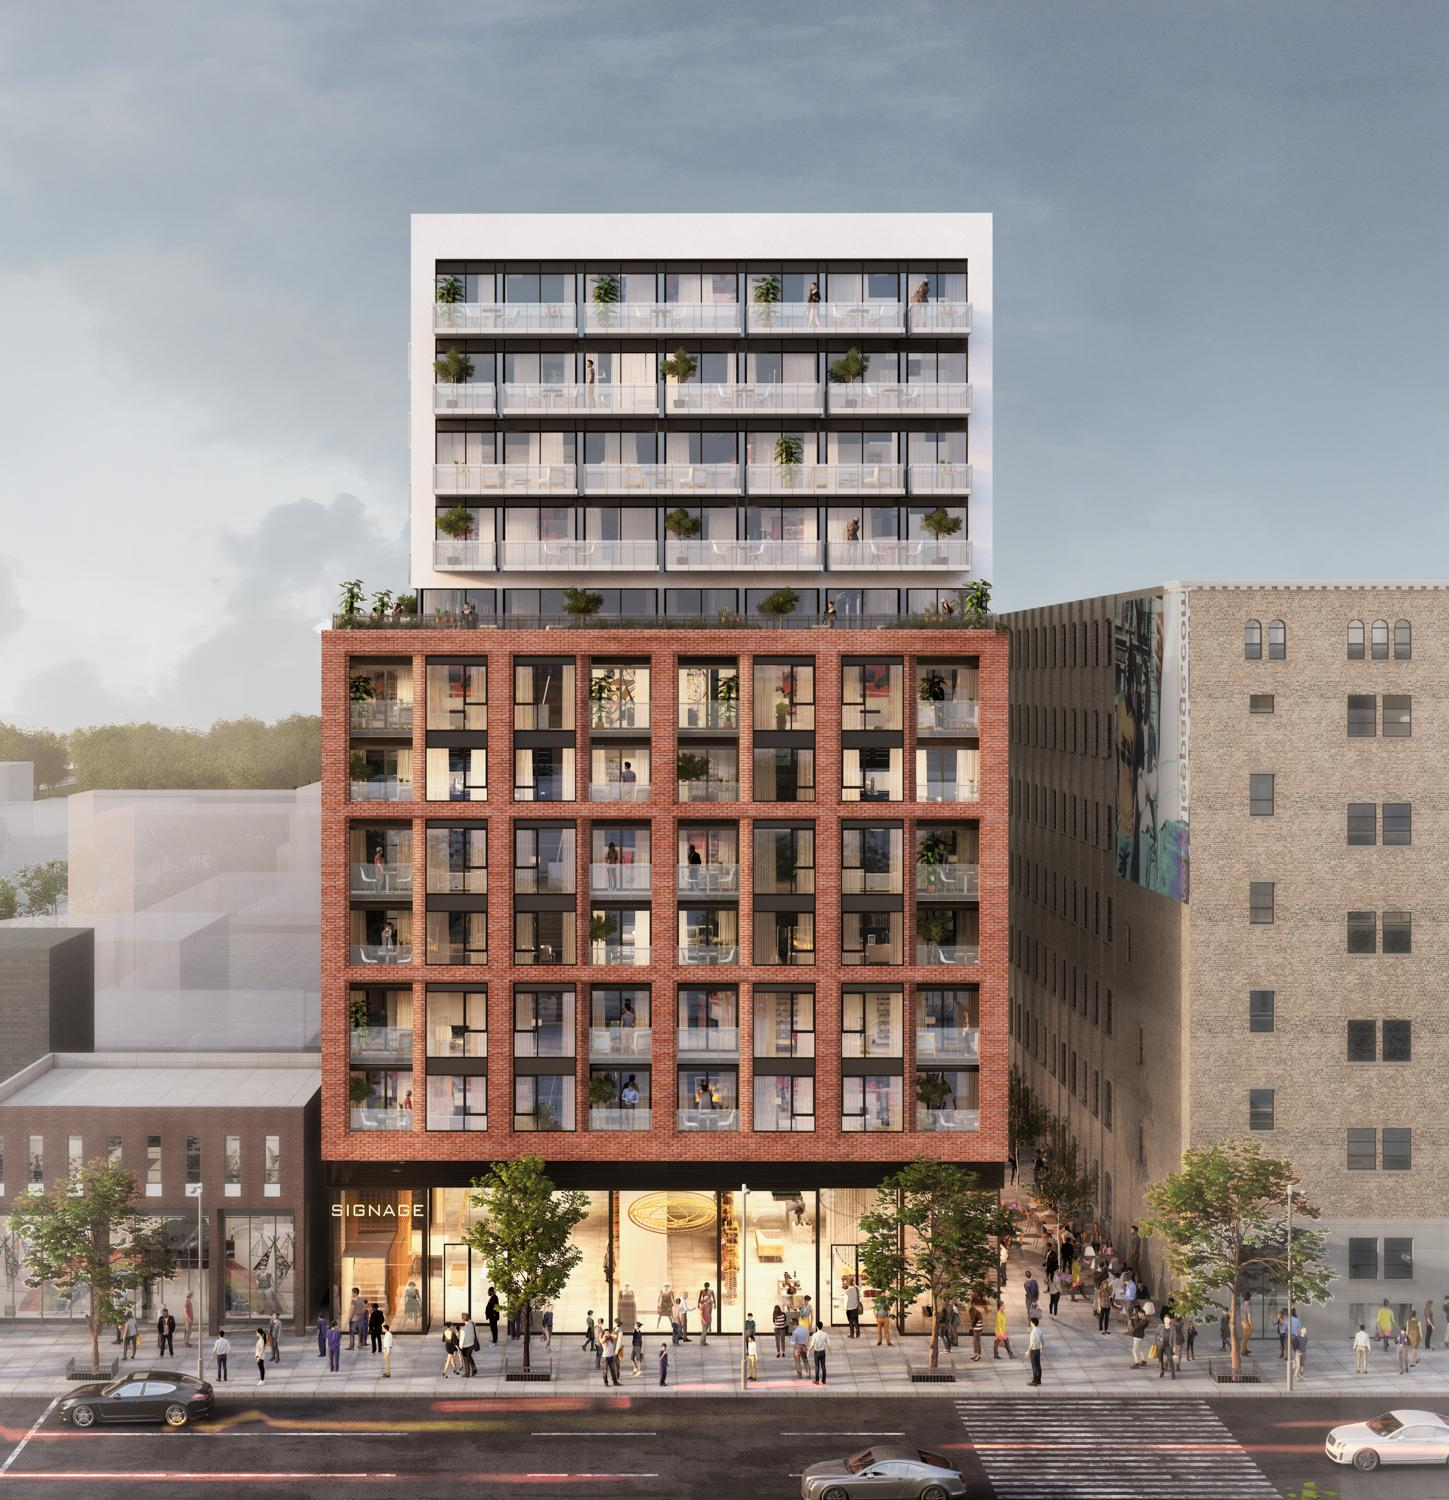 rendering of a 12-storey condo on a busy urban stretch with double-height glazed retail at grade, 6 storeys framed in red brick with inset balconies, and the top 4 floors set back with white cladding